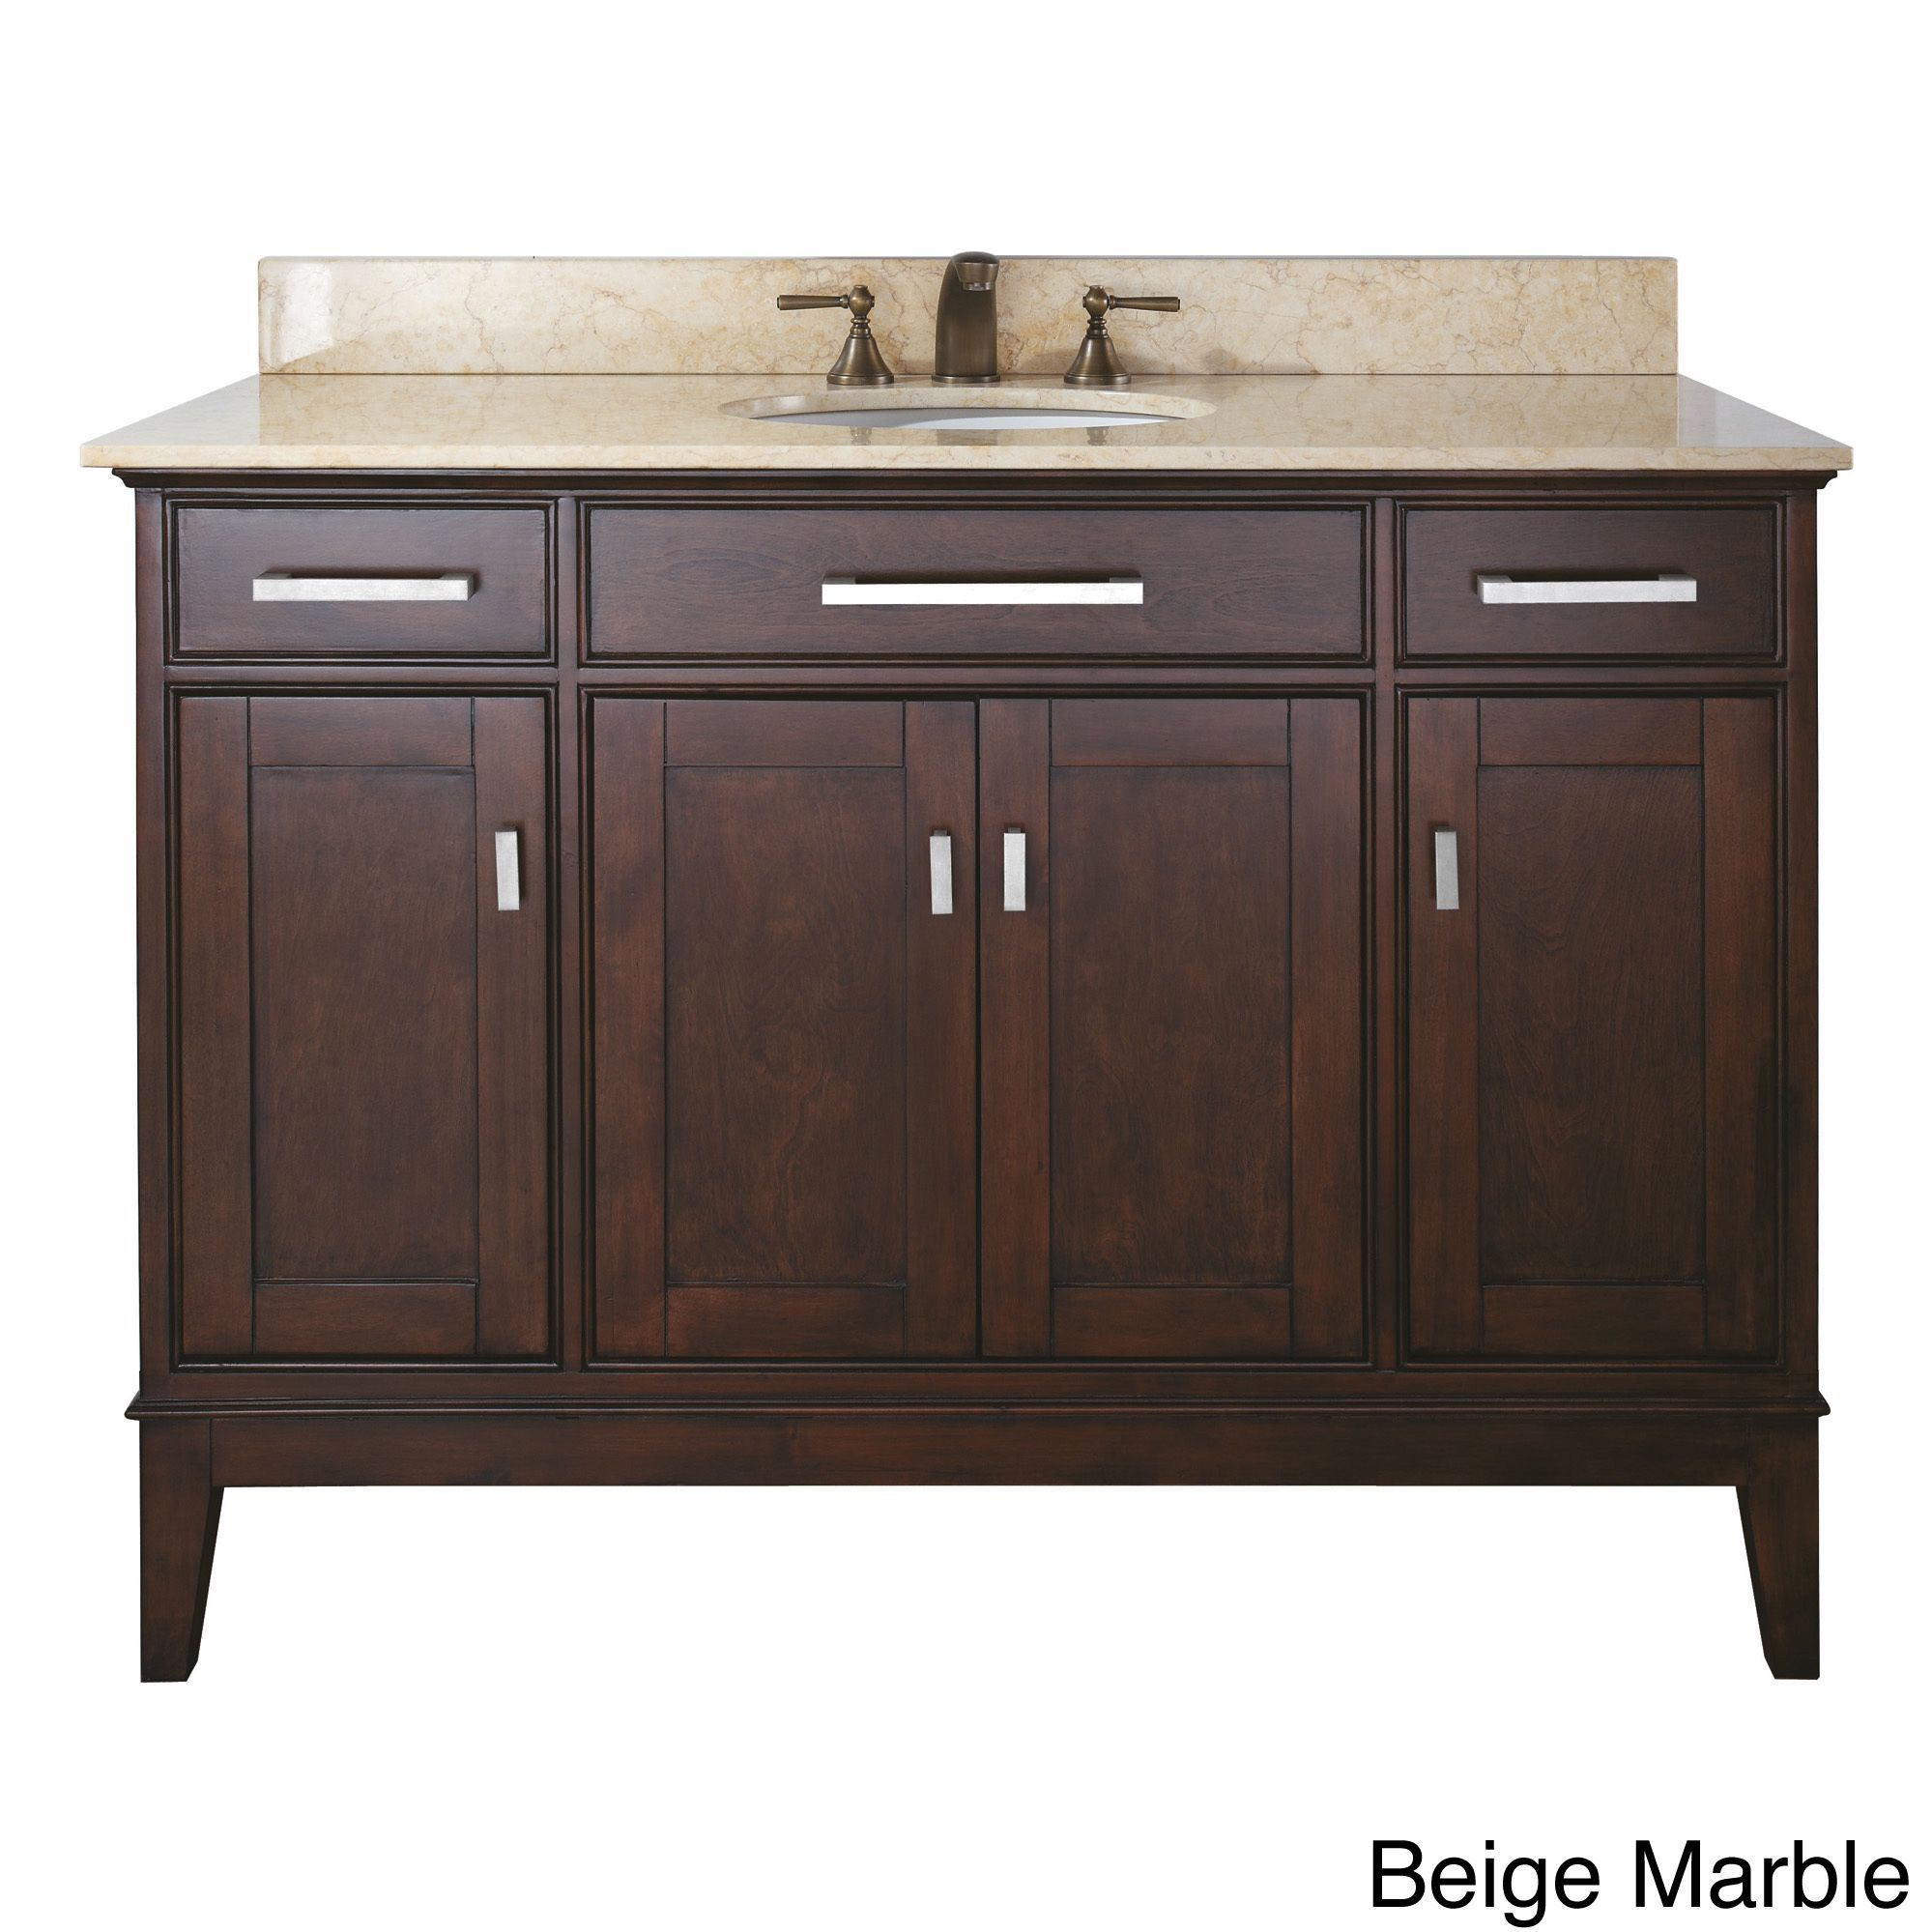 and design jose single or vanity luxury undermount vanities small style top in bathroom lovely sink sinks surprising